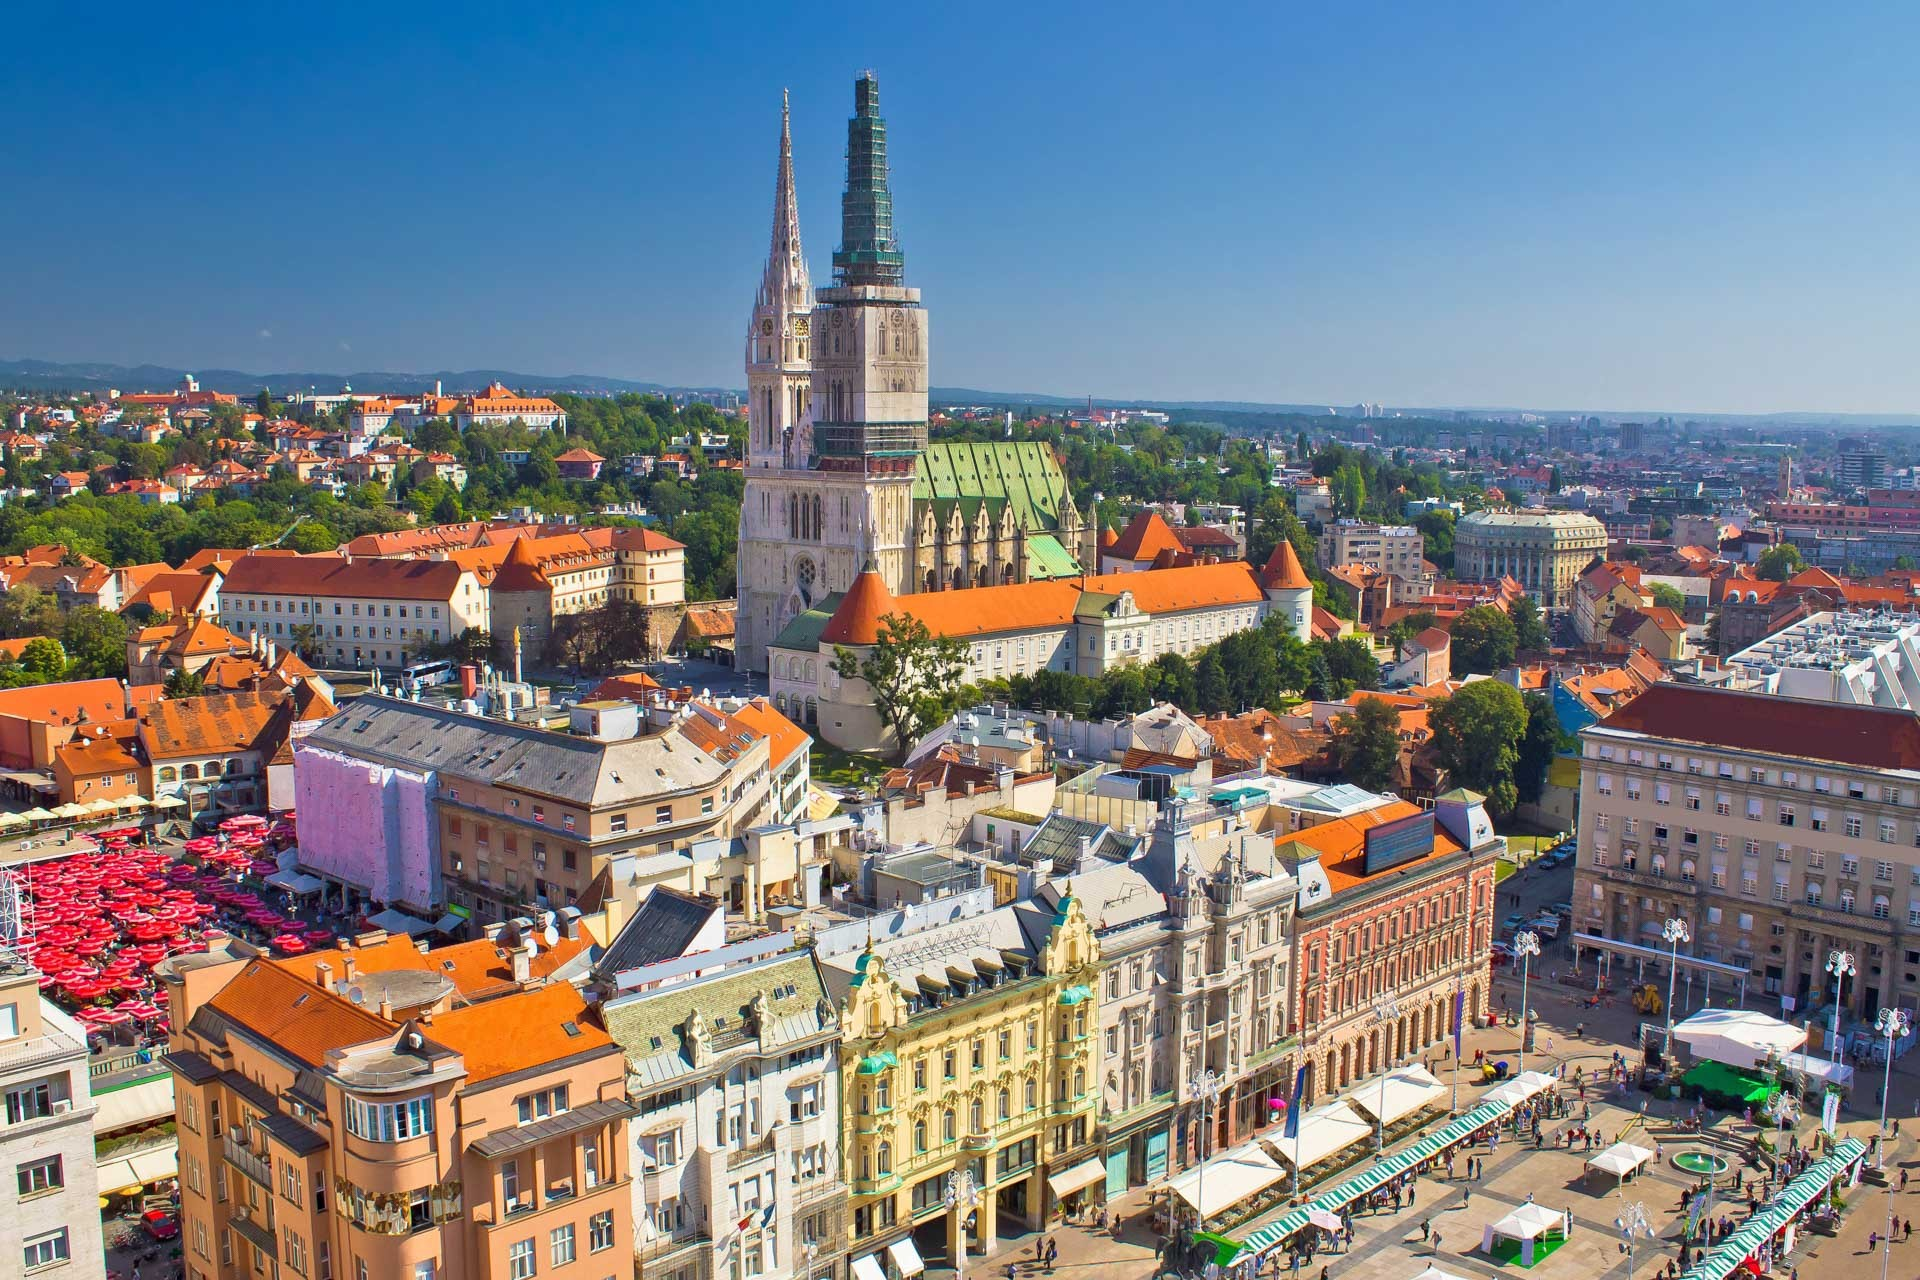 ZAGREB-ZAGREB with 3 countries in 9 days